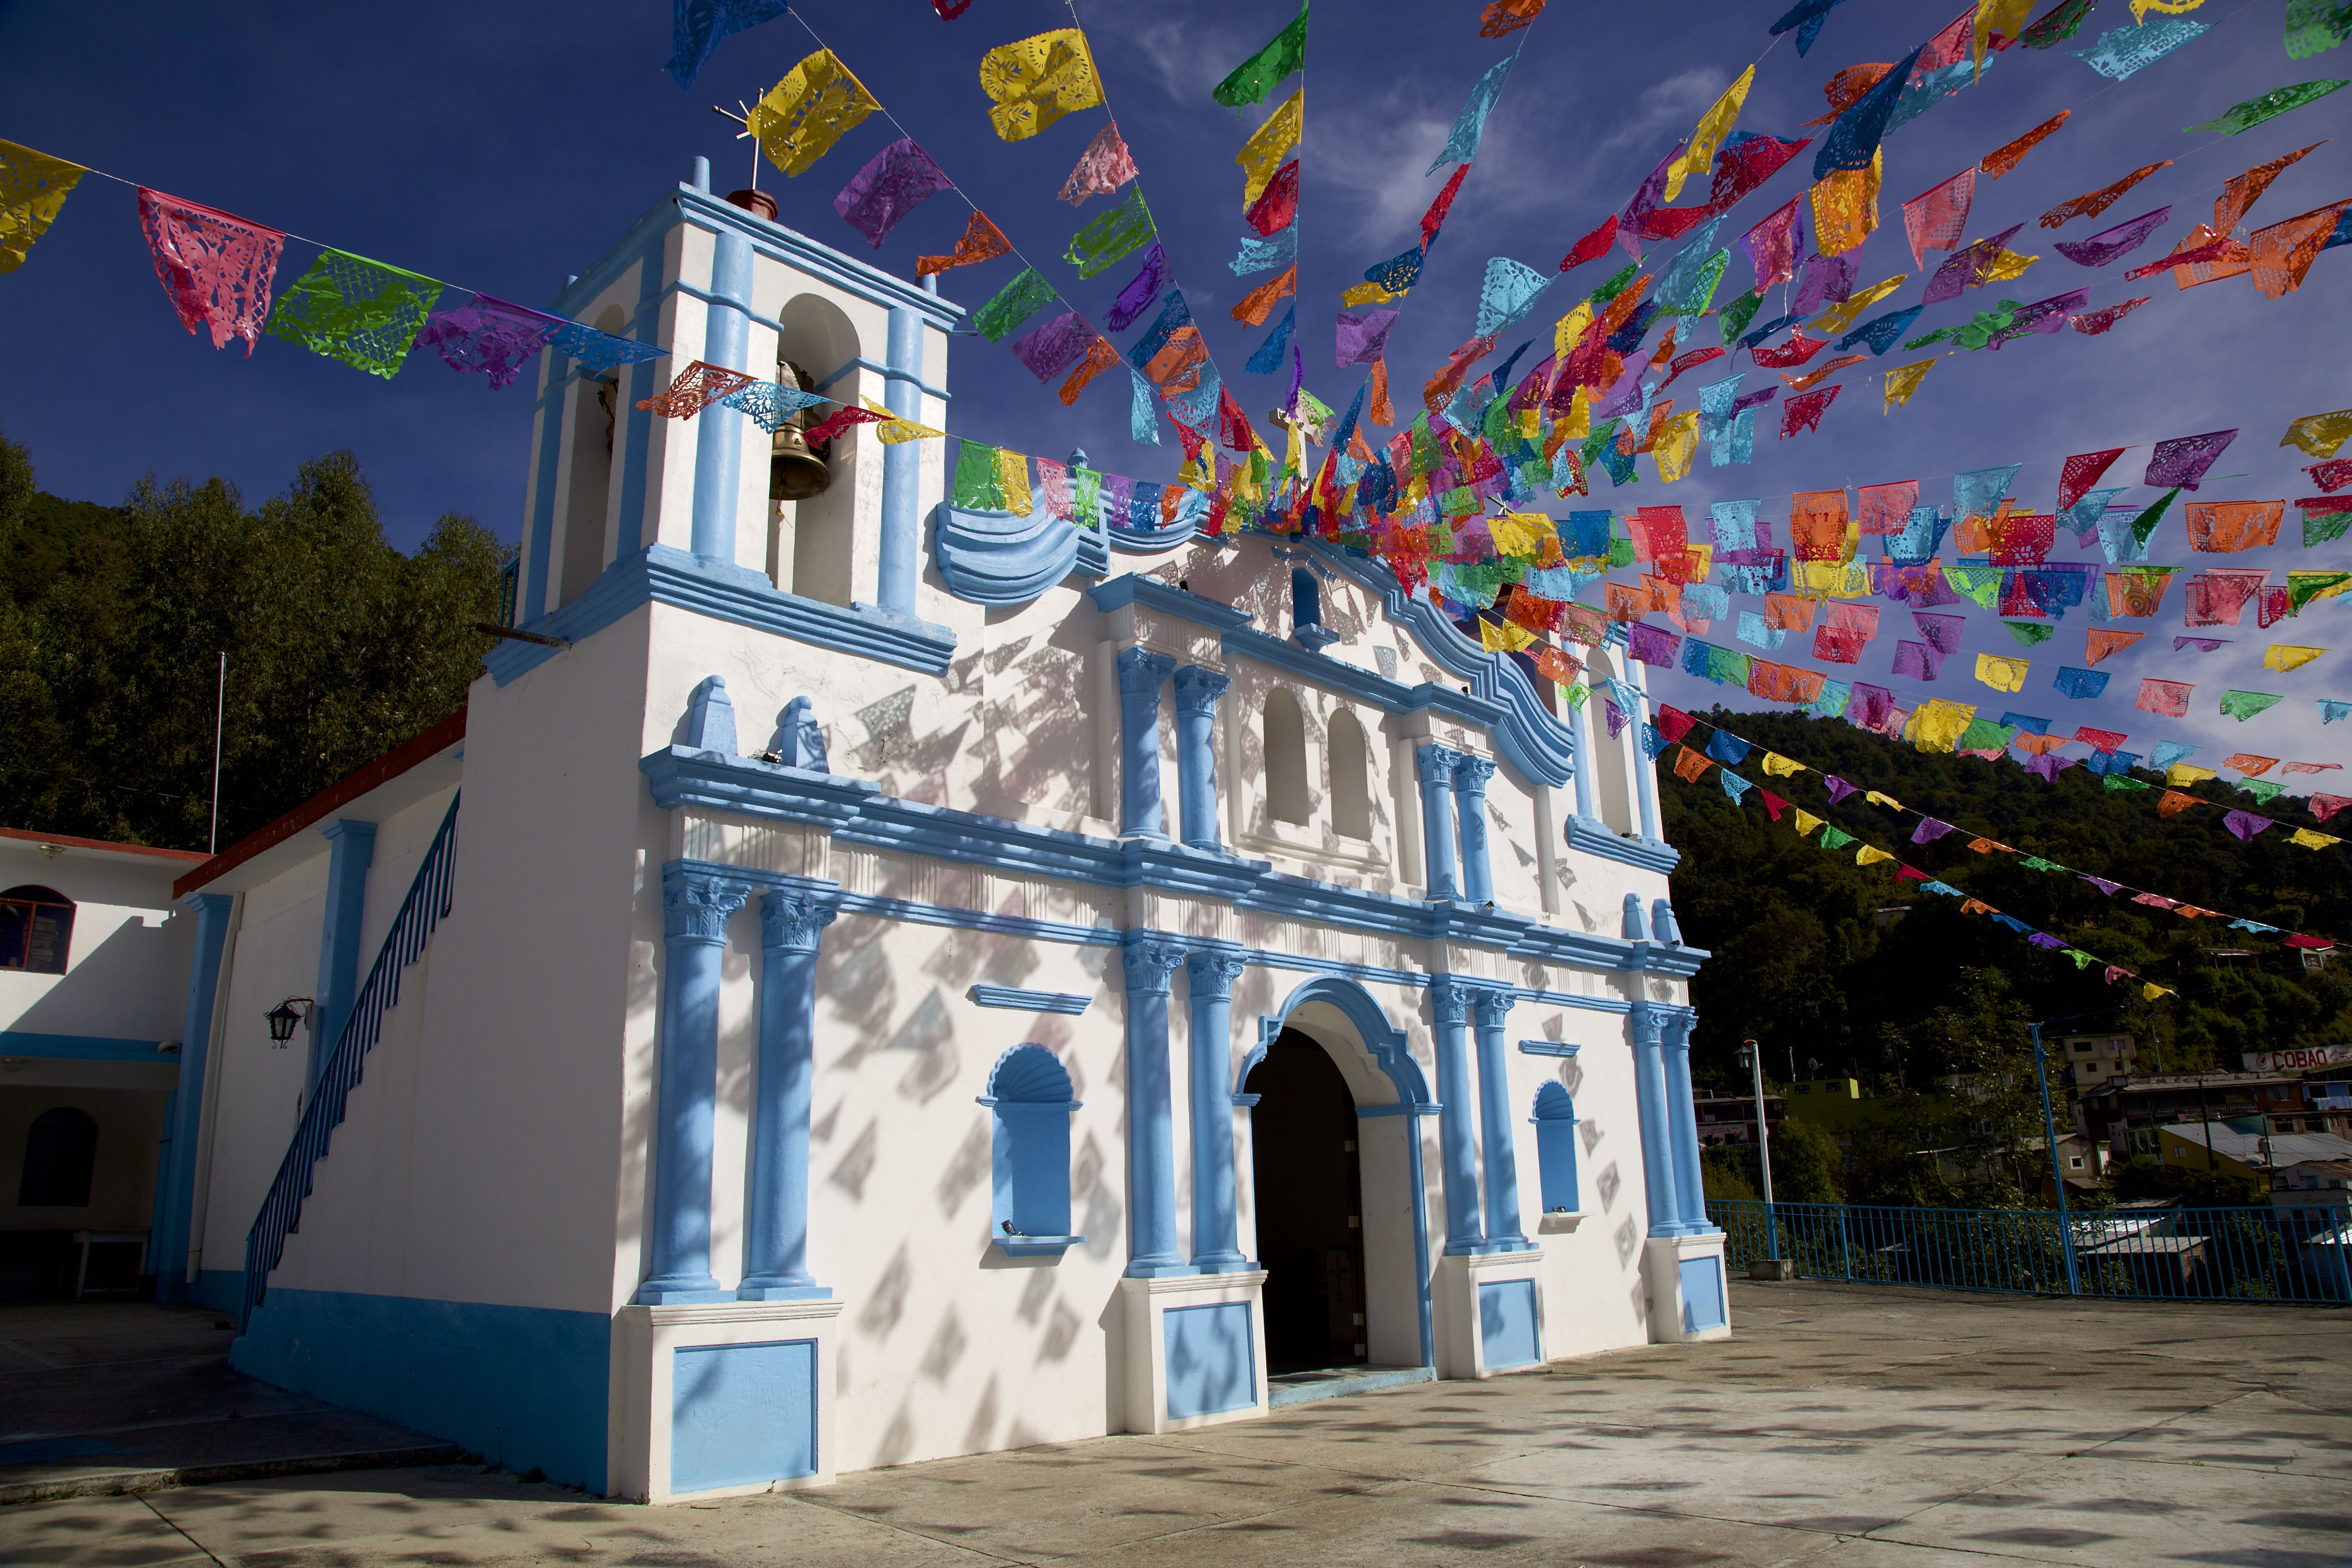 Top 10 oaxaca city sights and activities for Oaxaca to mexico city